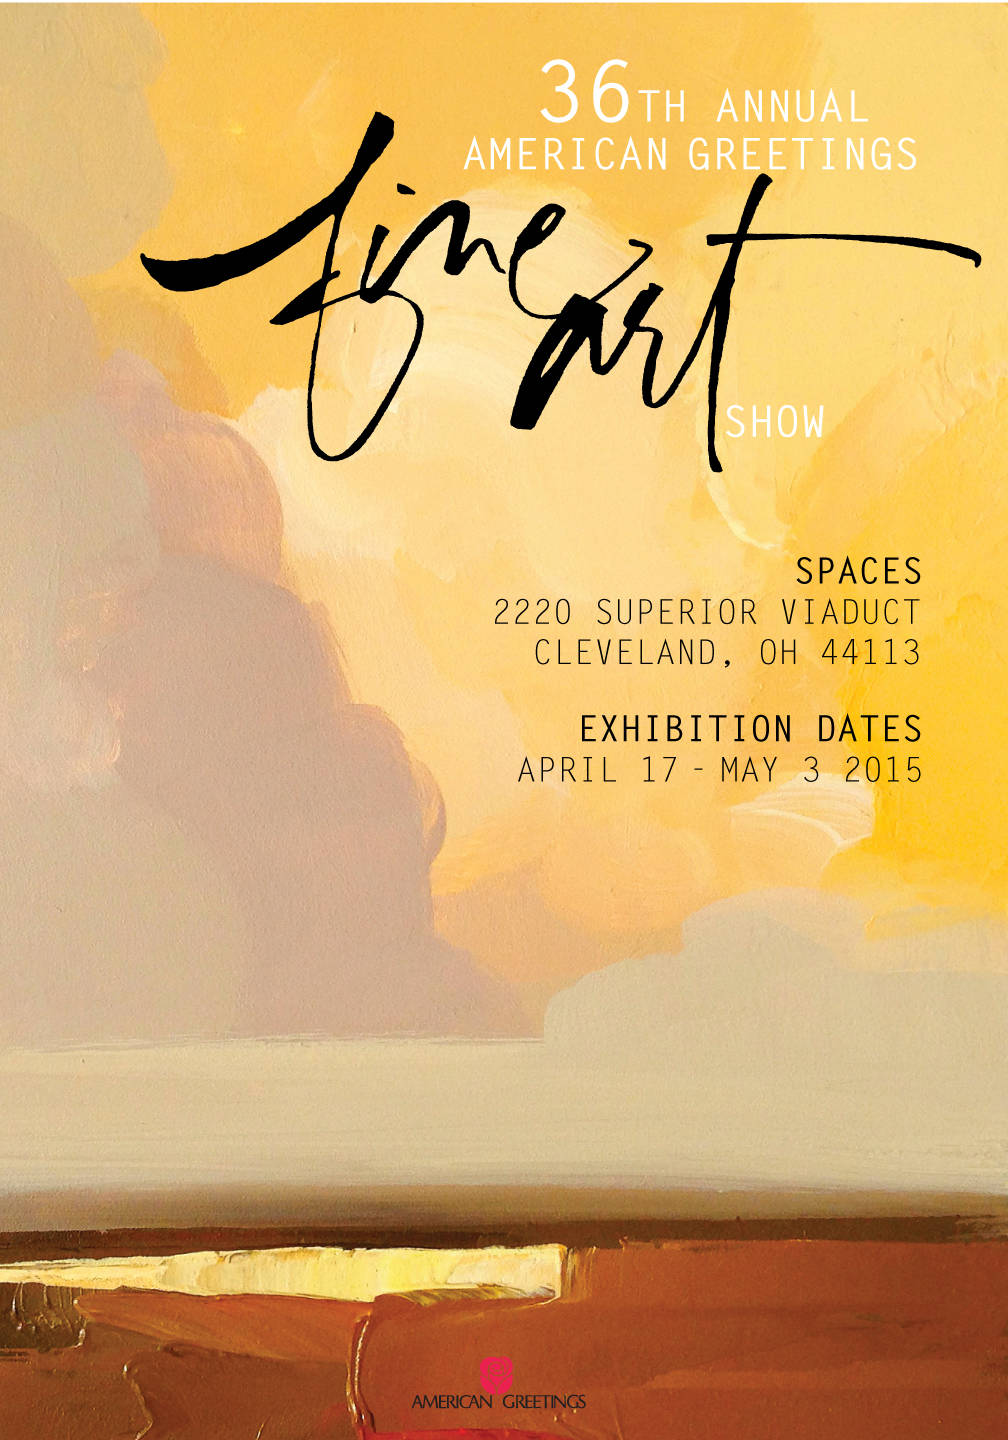 Spaces events american greetings fine arts show american greetings fine arts show m4hsunfo